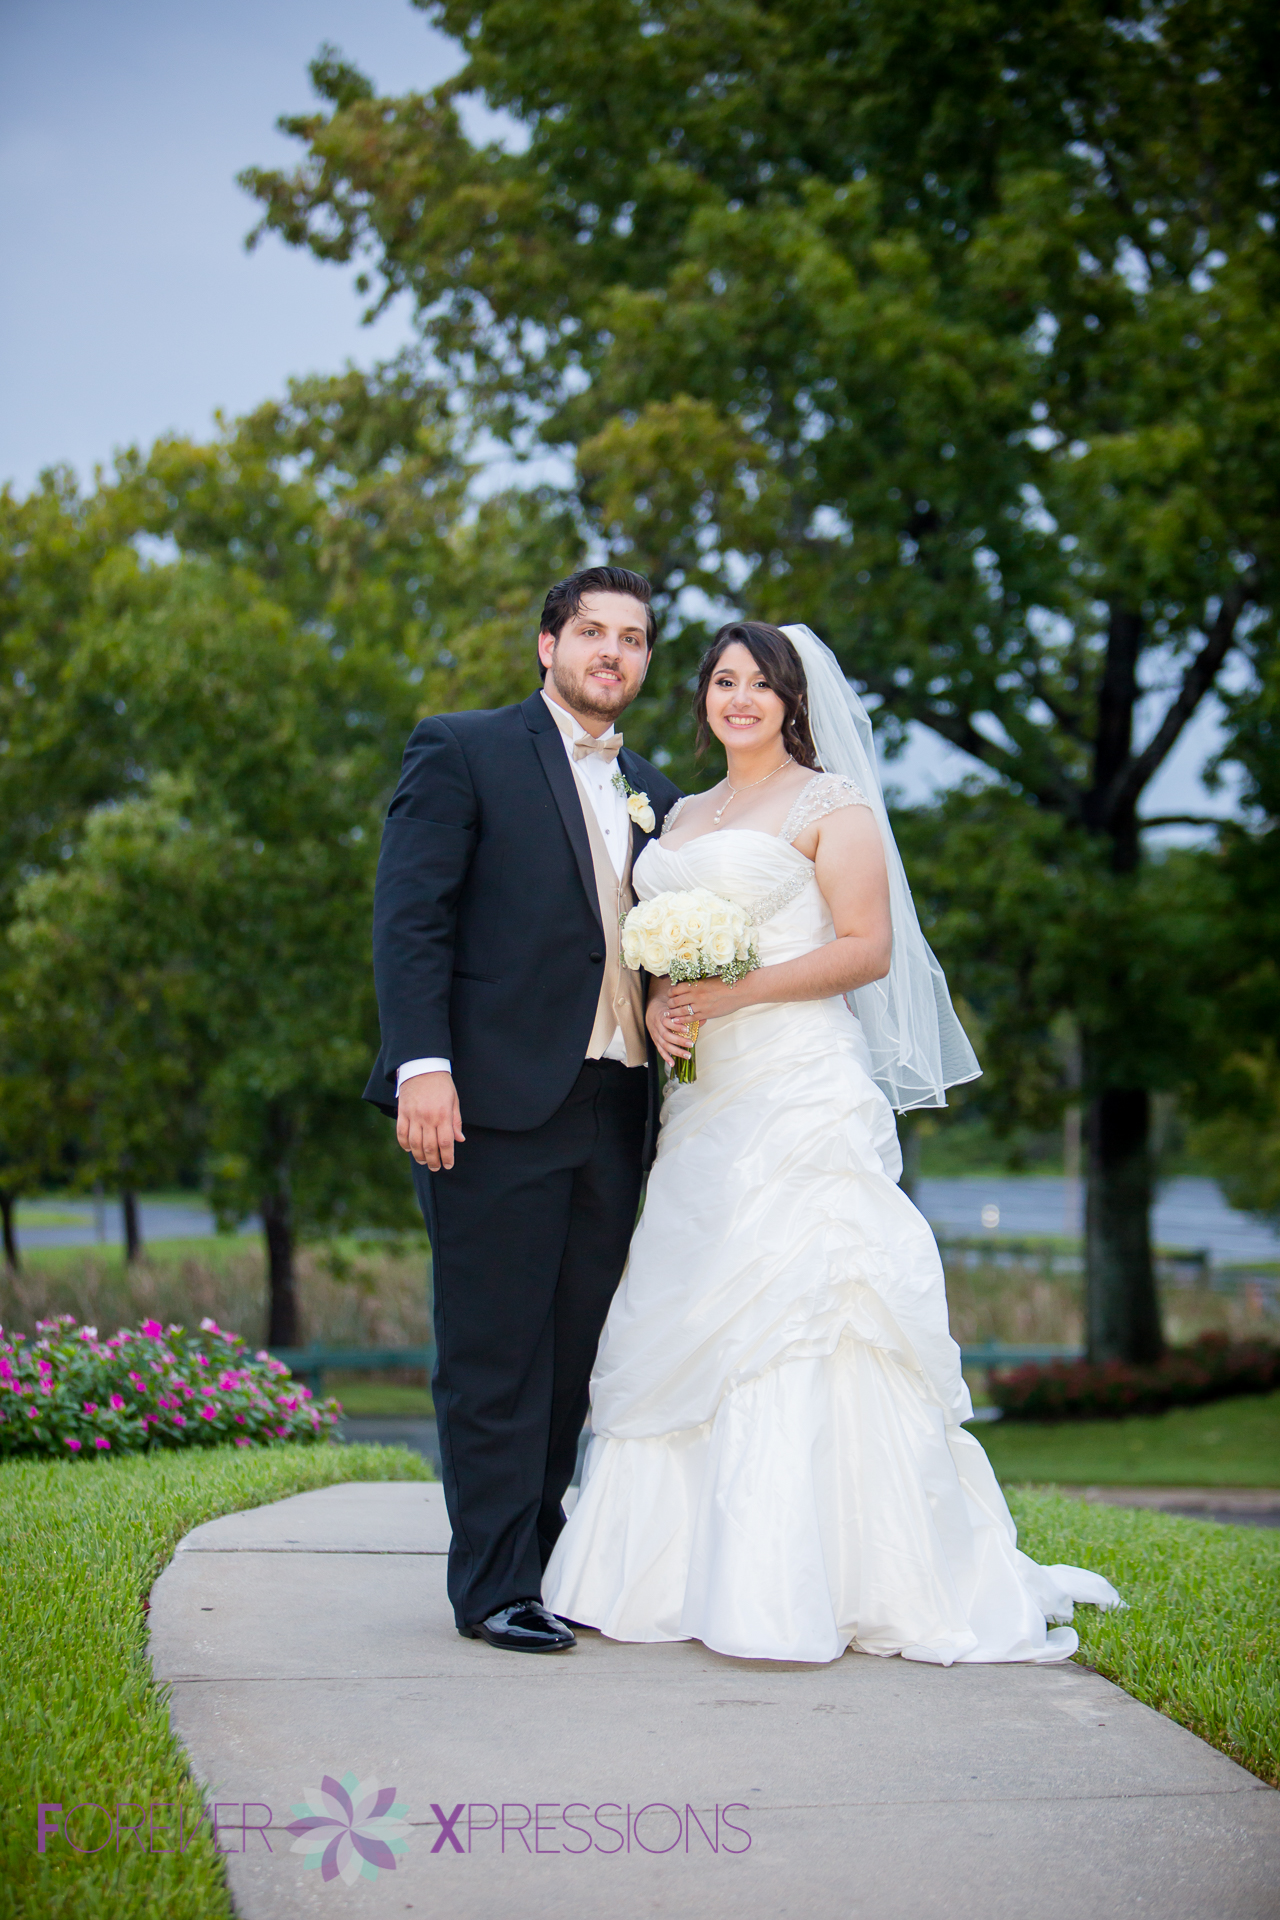 Forever_Xpressions_Wedding_Photography_Monteverde_Bella_Collina-0510